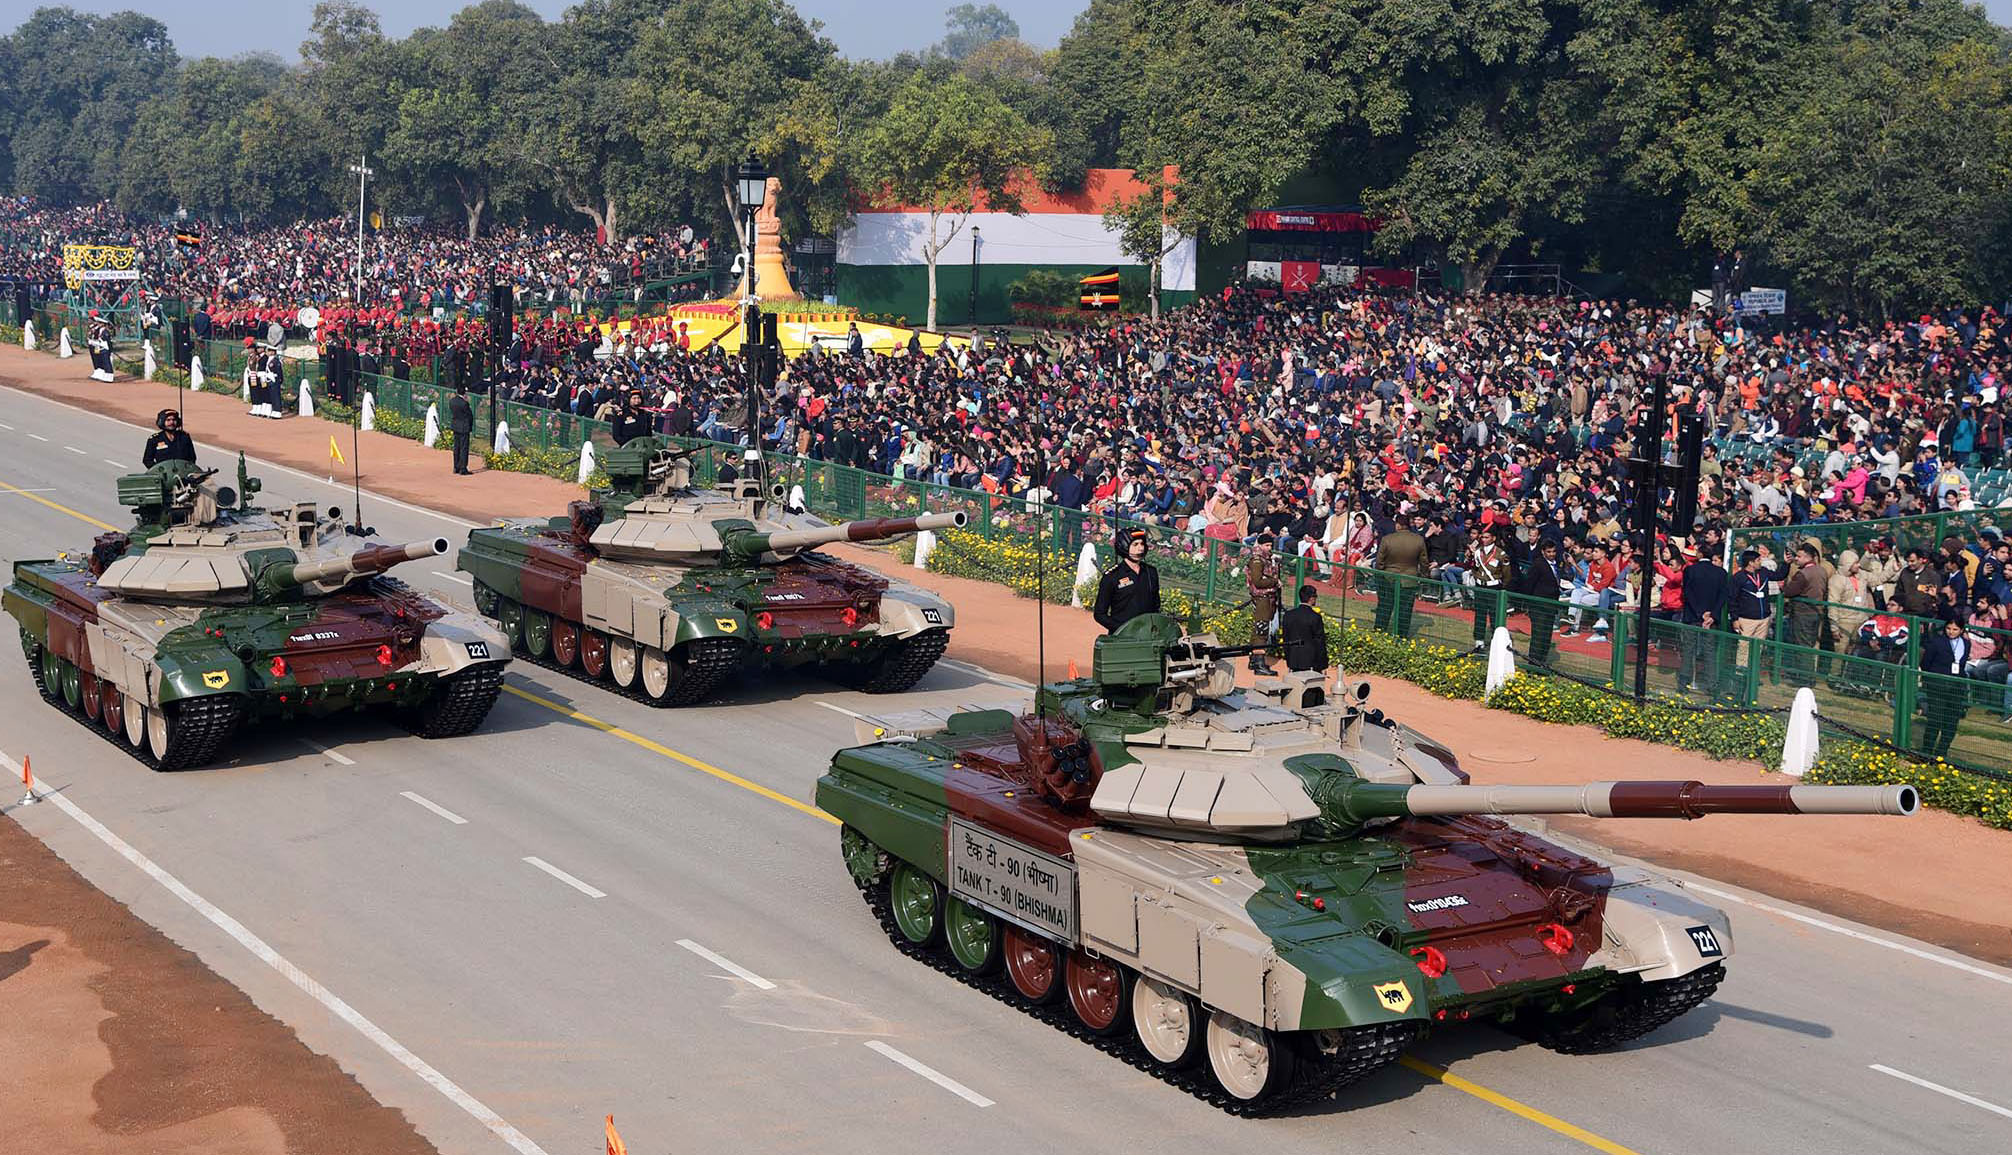 Tank T- 90 (Bhishma) passes through the Rajpath, at the 71st Republic Day Celebrations